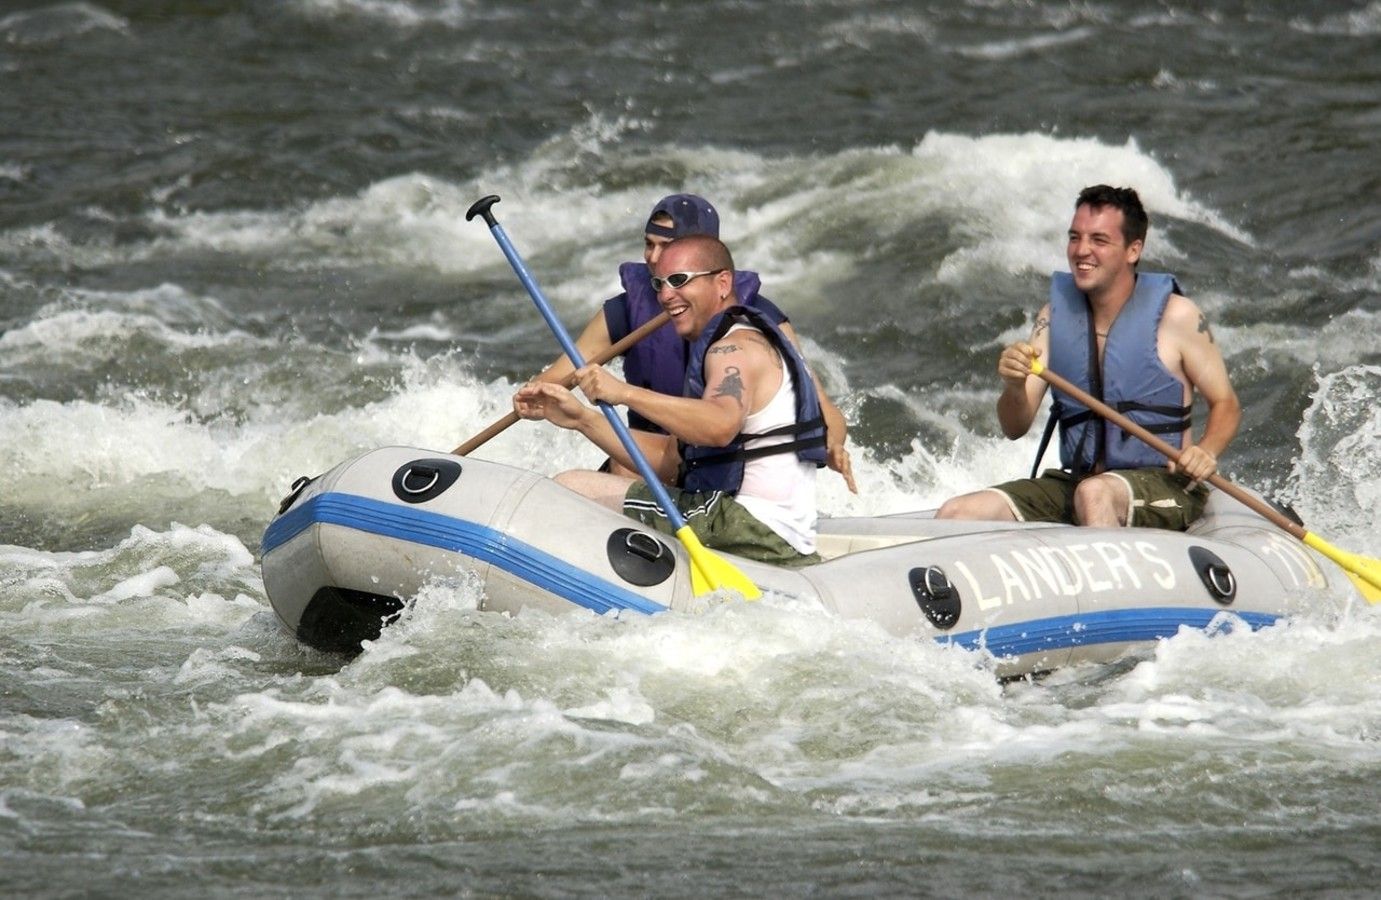 3 whitewater rafters